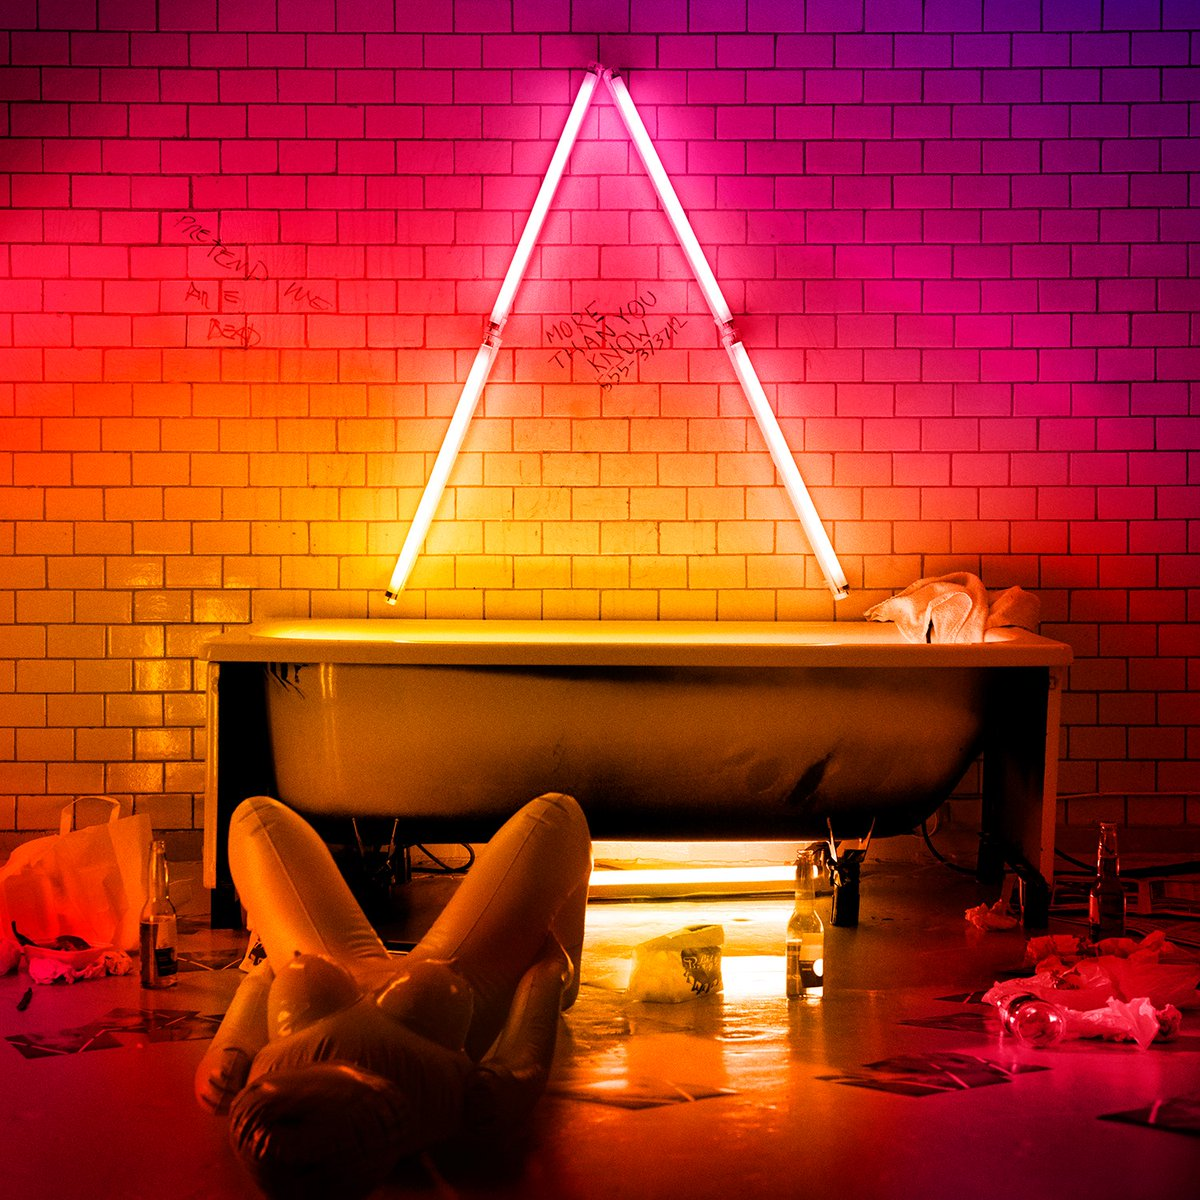 Axwell ingrosso more than you know firebeatz rework by manu.